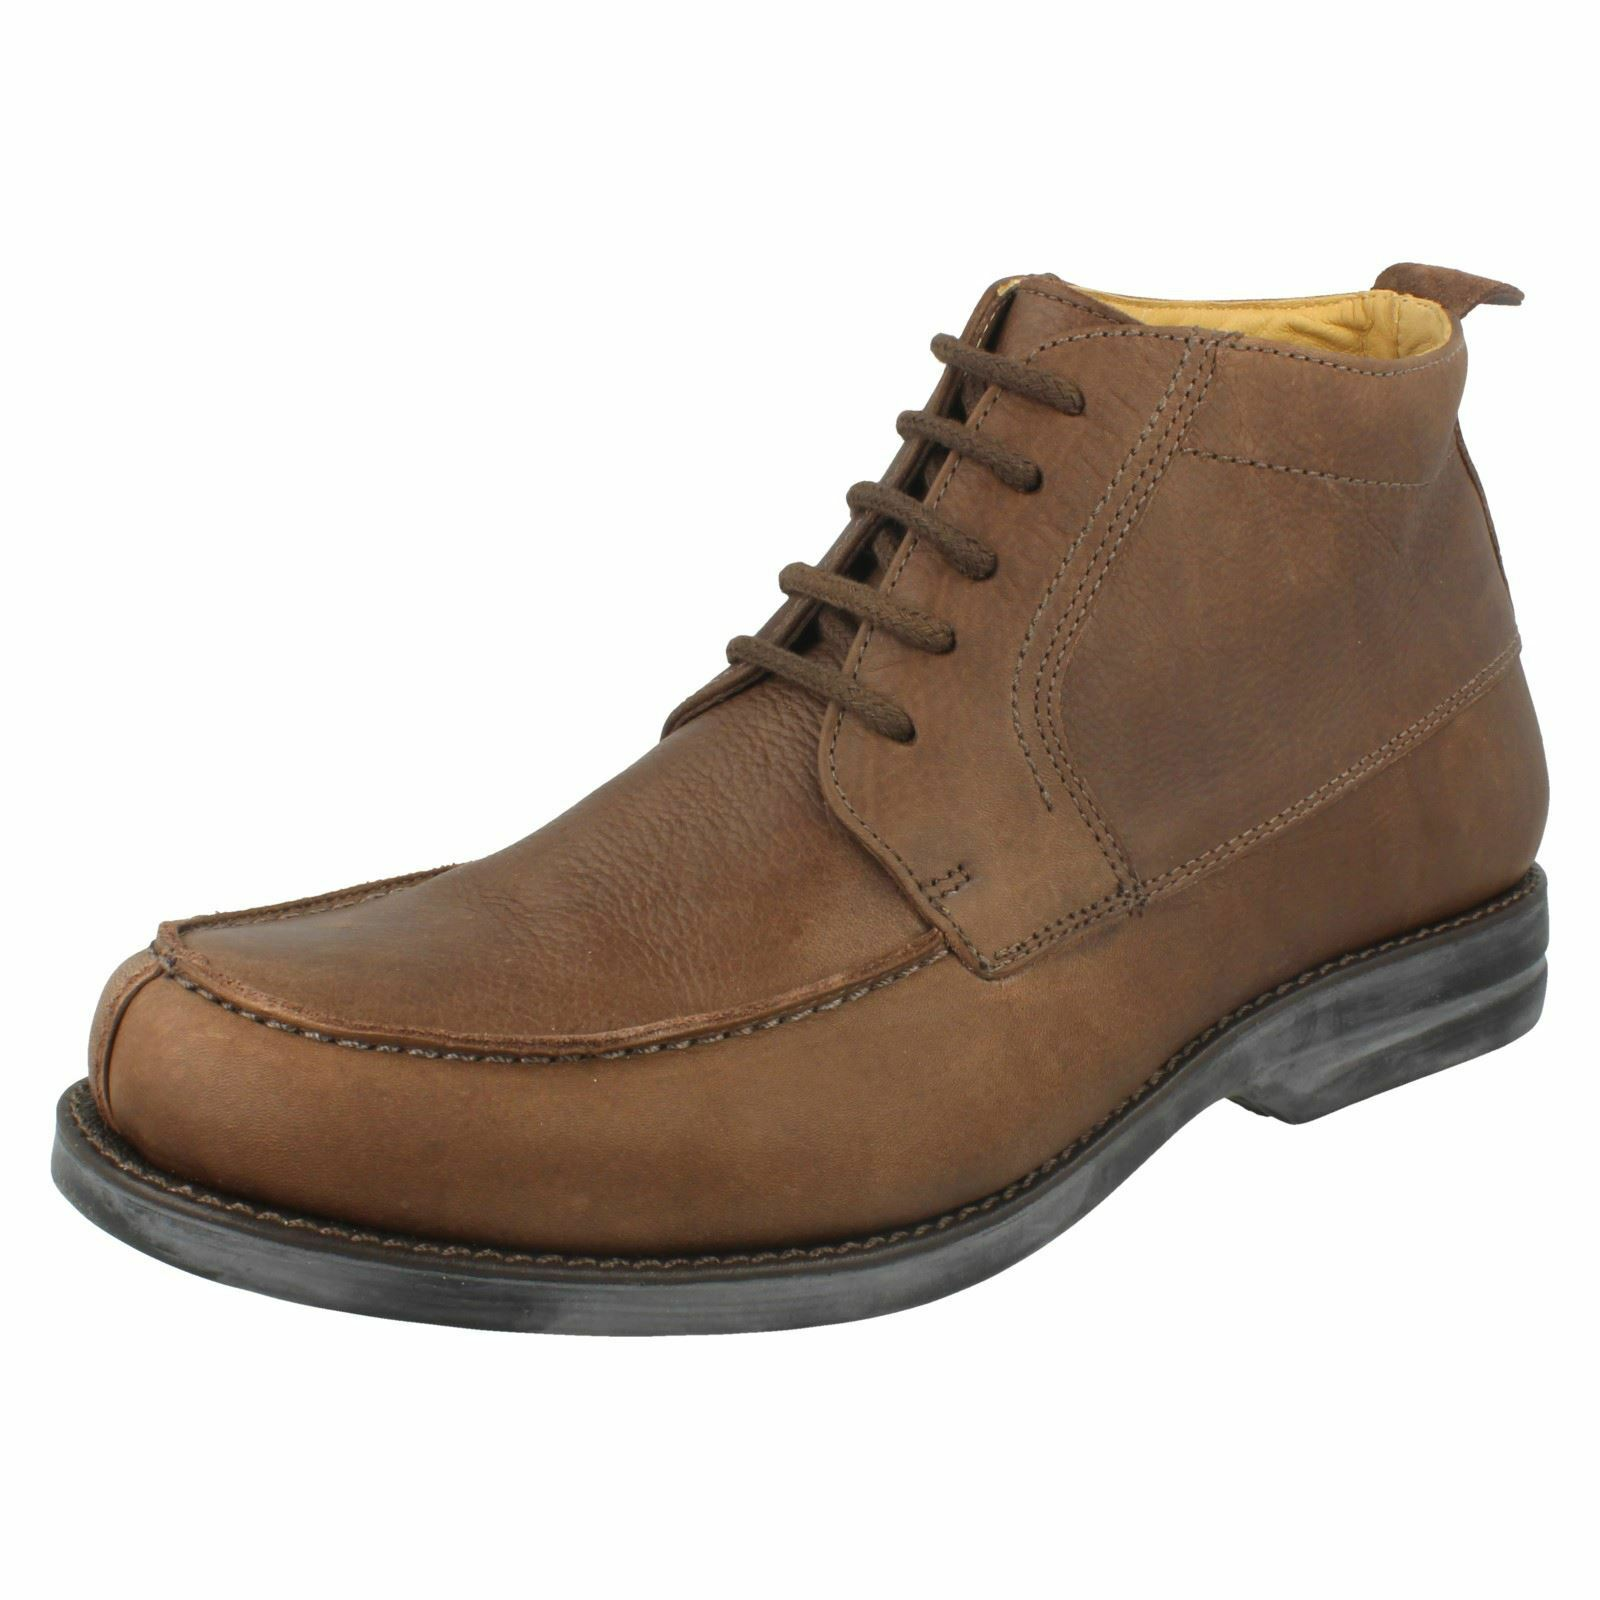 Anatomic Mens Ankle Boots - Regalo